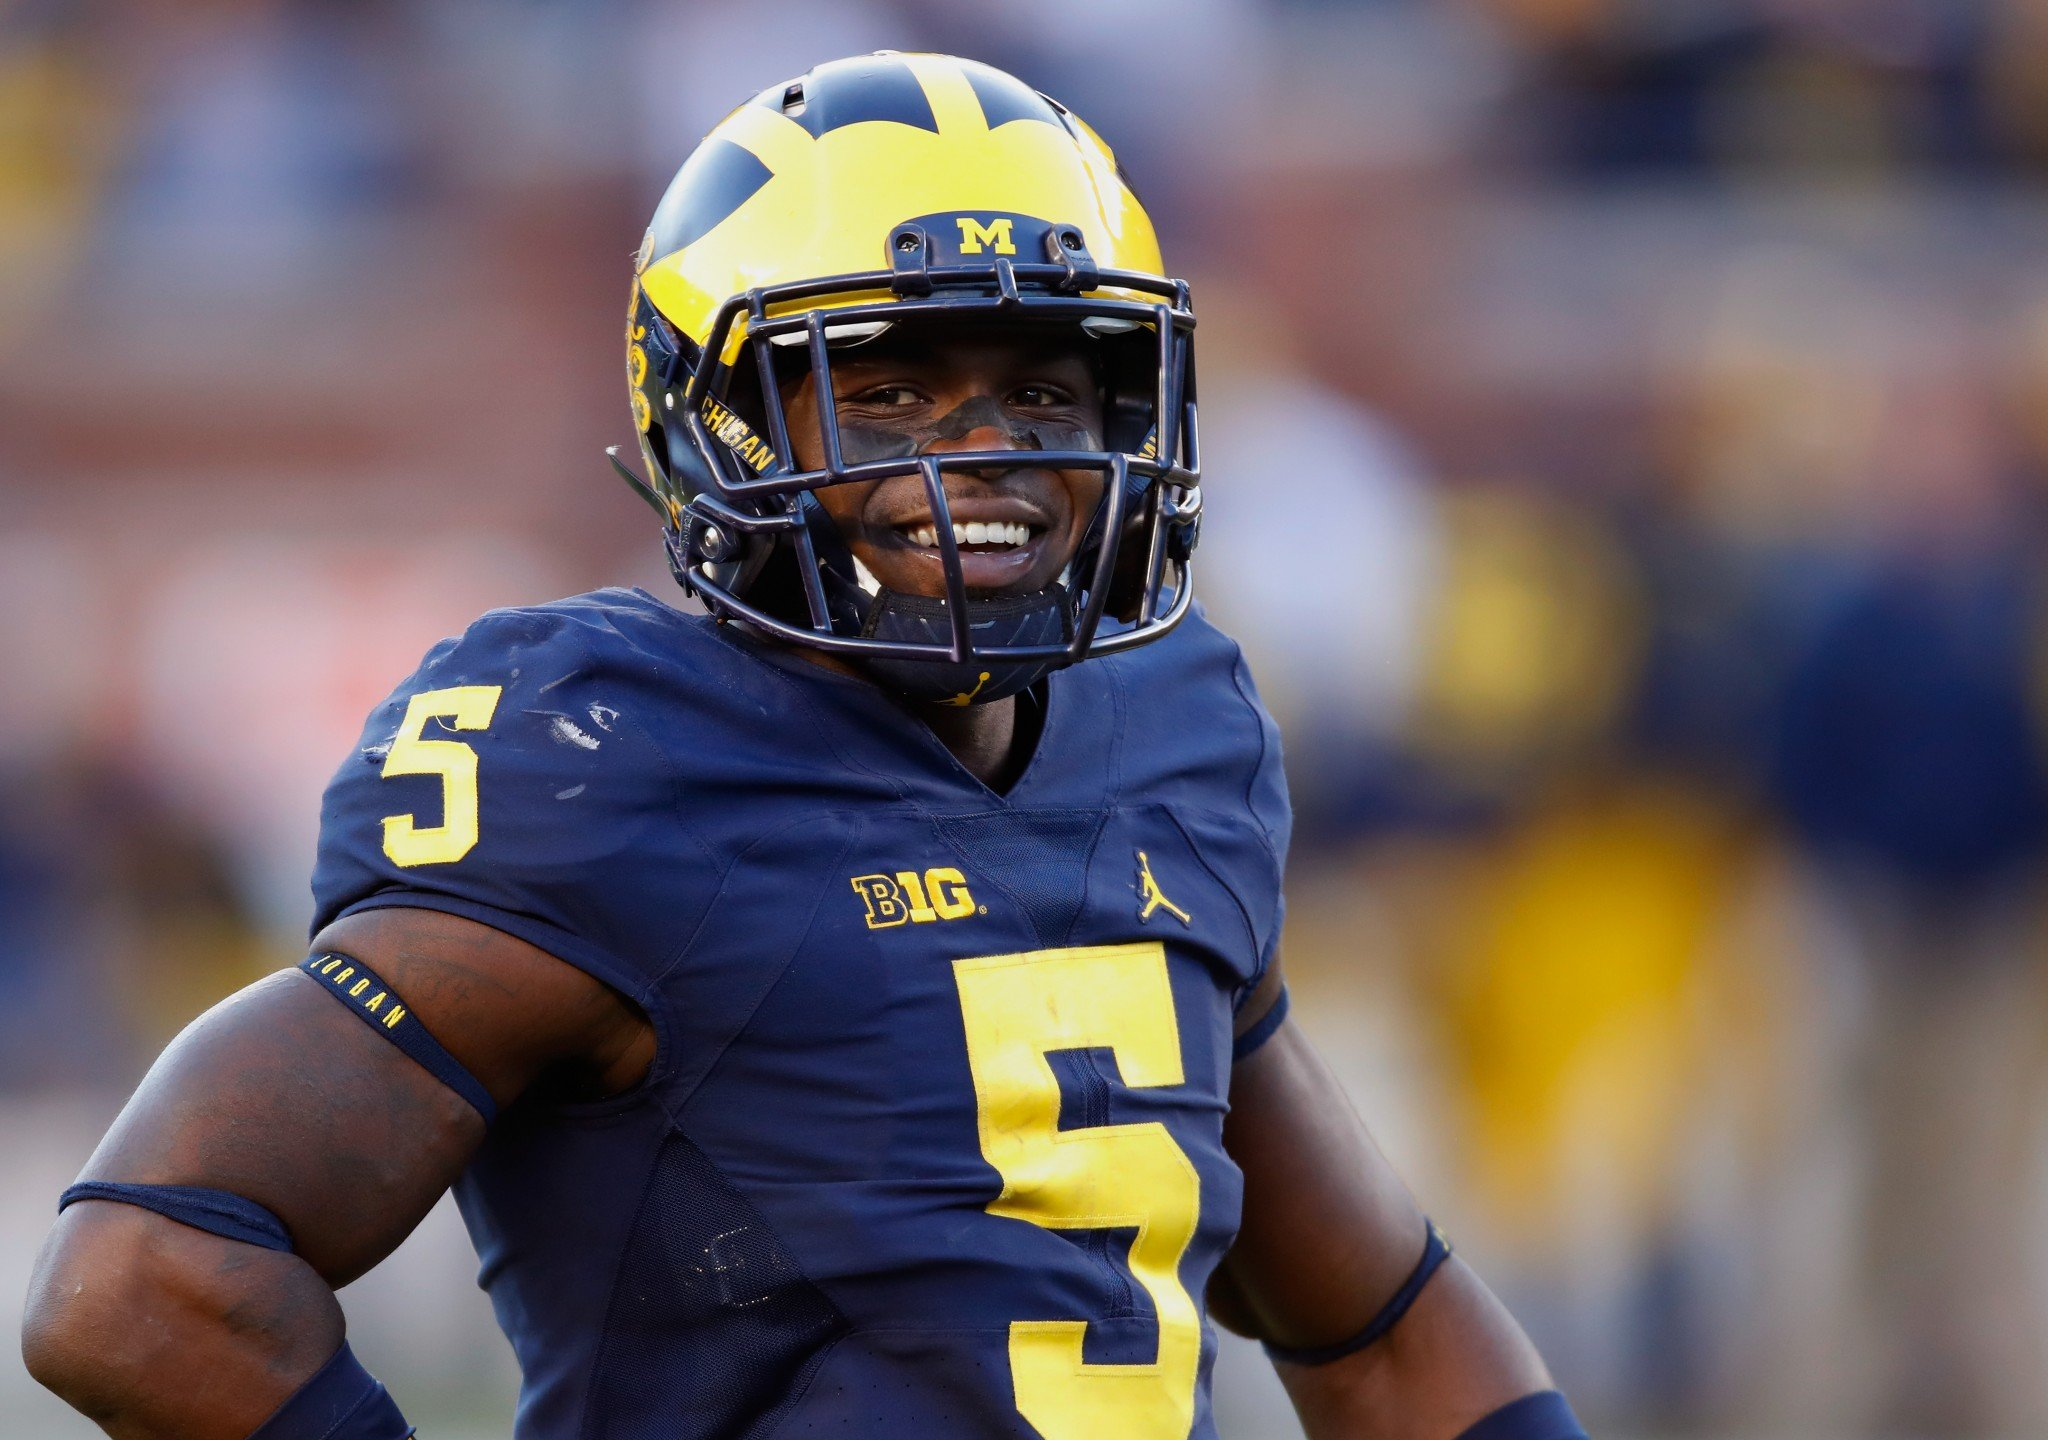 Jabrill Peppers was smiling during Michigan's win over Illinois. (Getty)